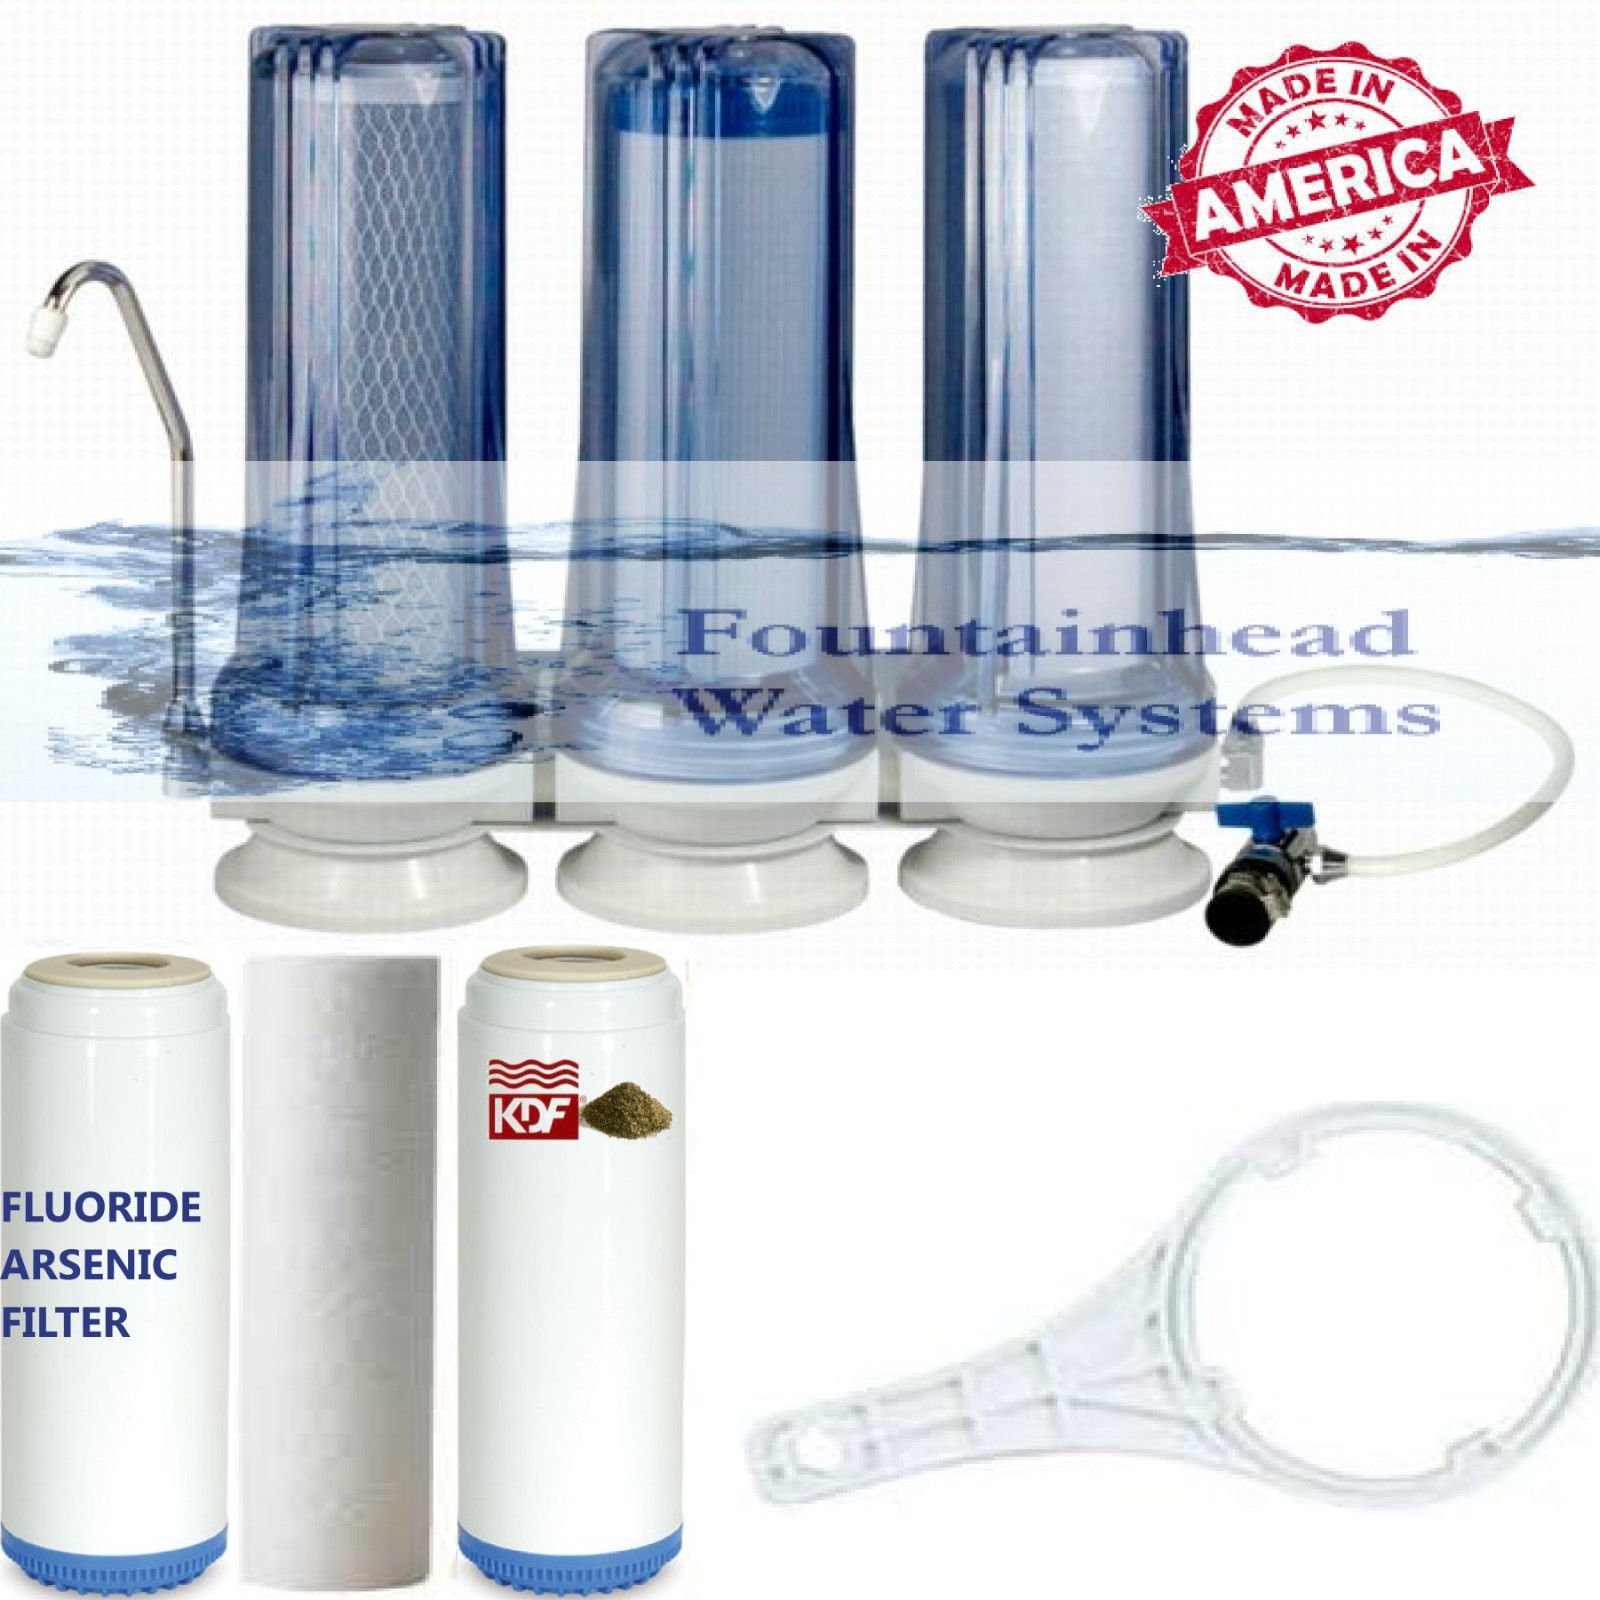 FOUNTAINHEAD 3 STAGE COUNTERTOP WATER FILTER FLUORIDE/CARBON/KDF FAUCET ADAPTER